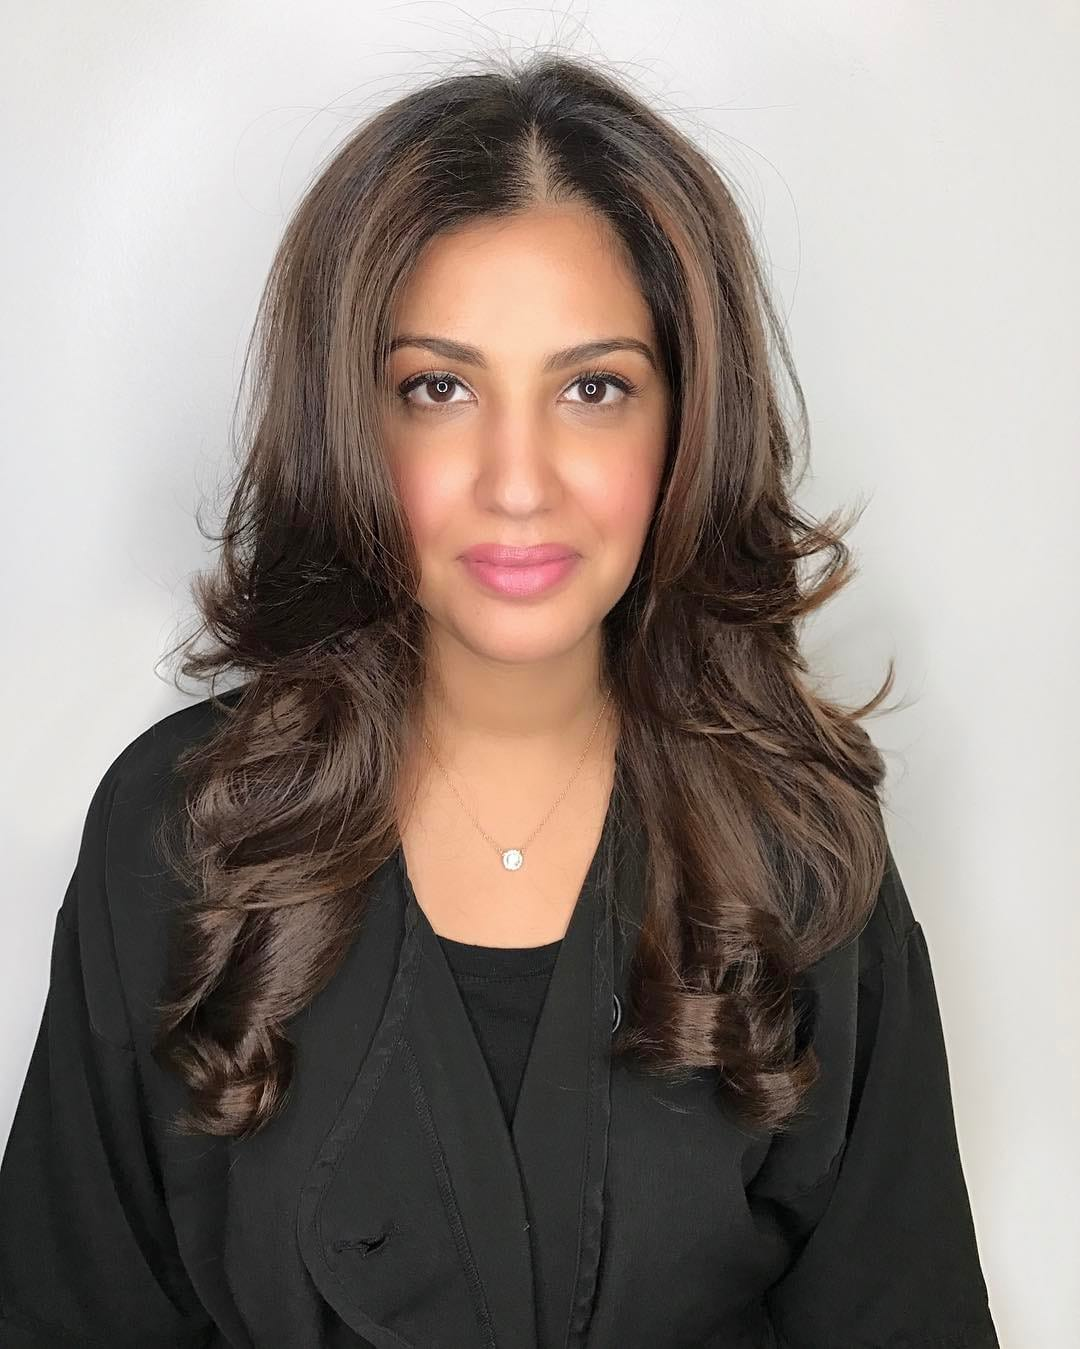 Long Layered Hair with Blowout Styling and Curled Tips on Brunette Balayage Colored Hair